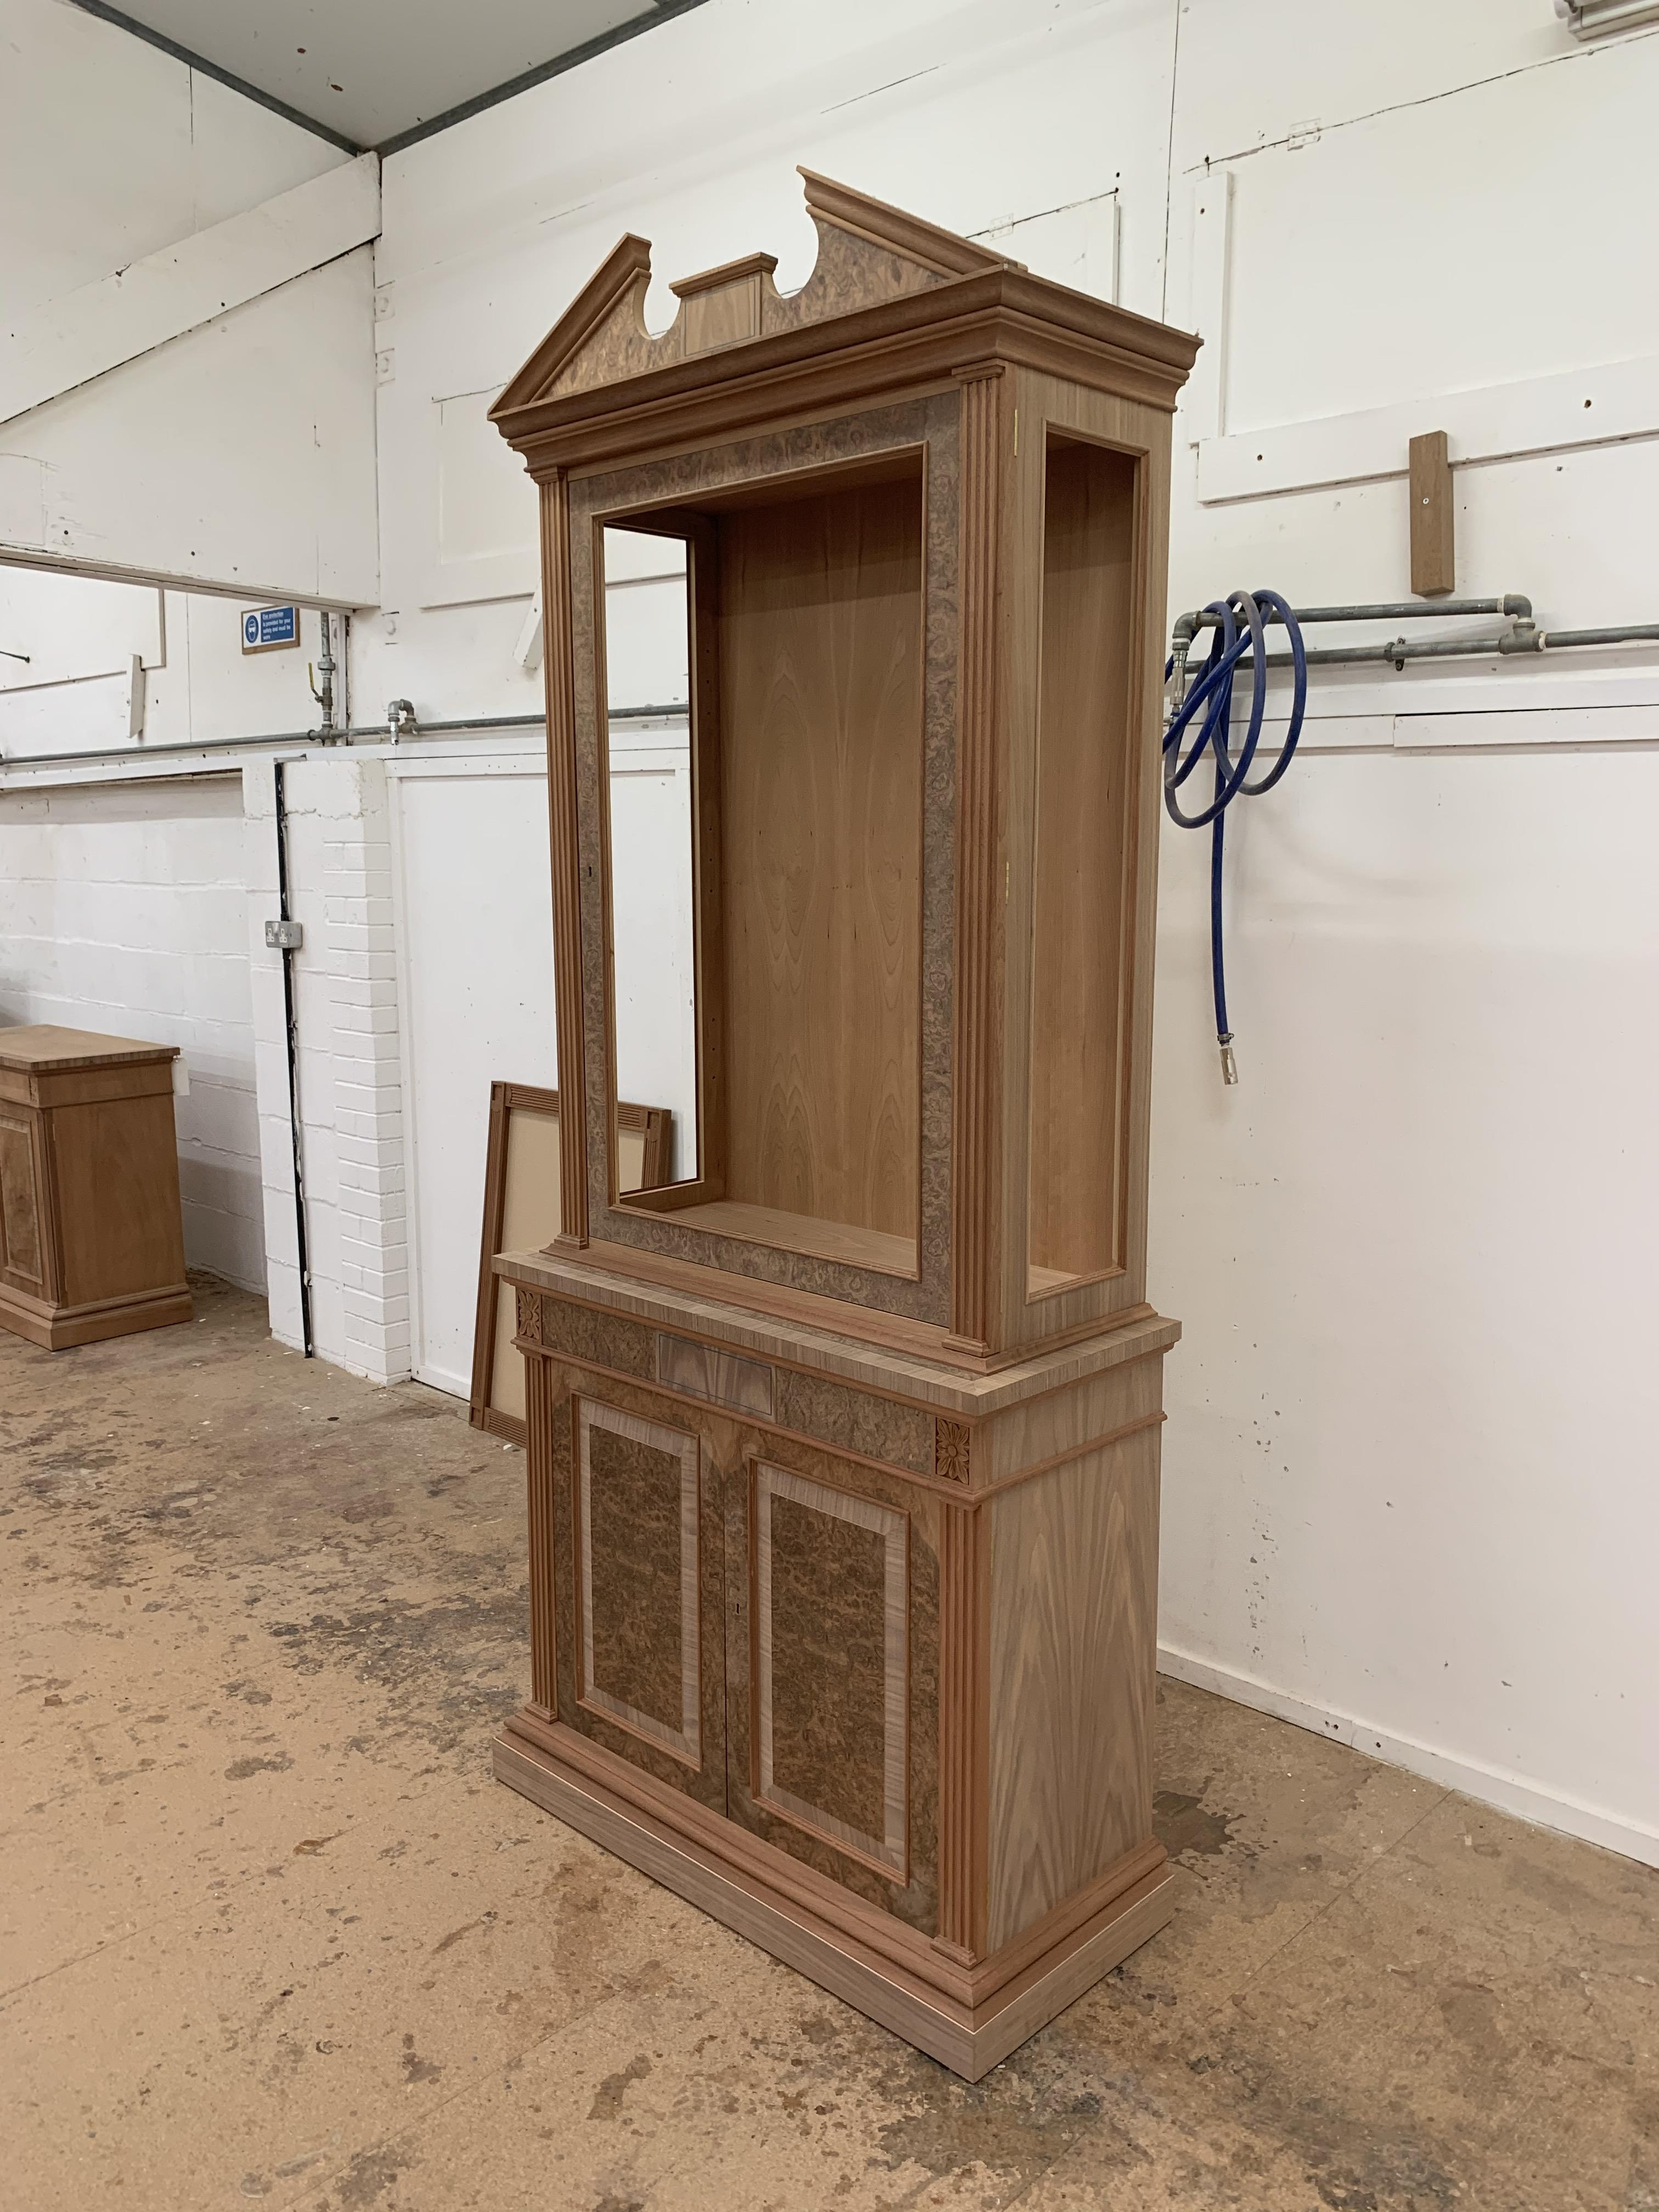 Lot 31 - Two-door tall Bookcase, in walnut finish, from the Corinthian range, requires finishing/polishing.